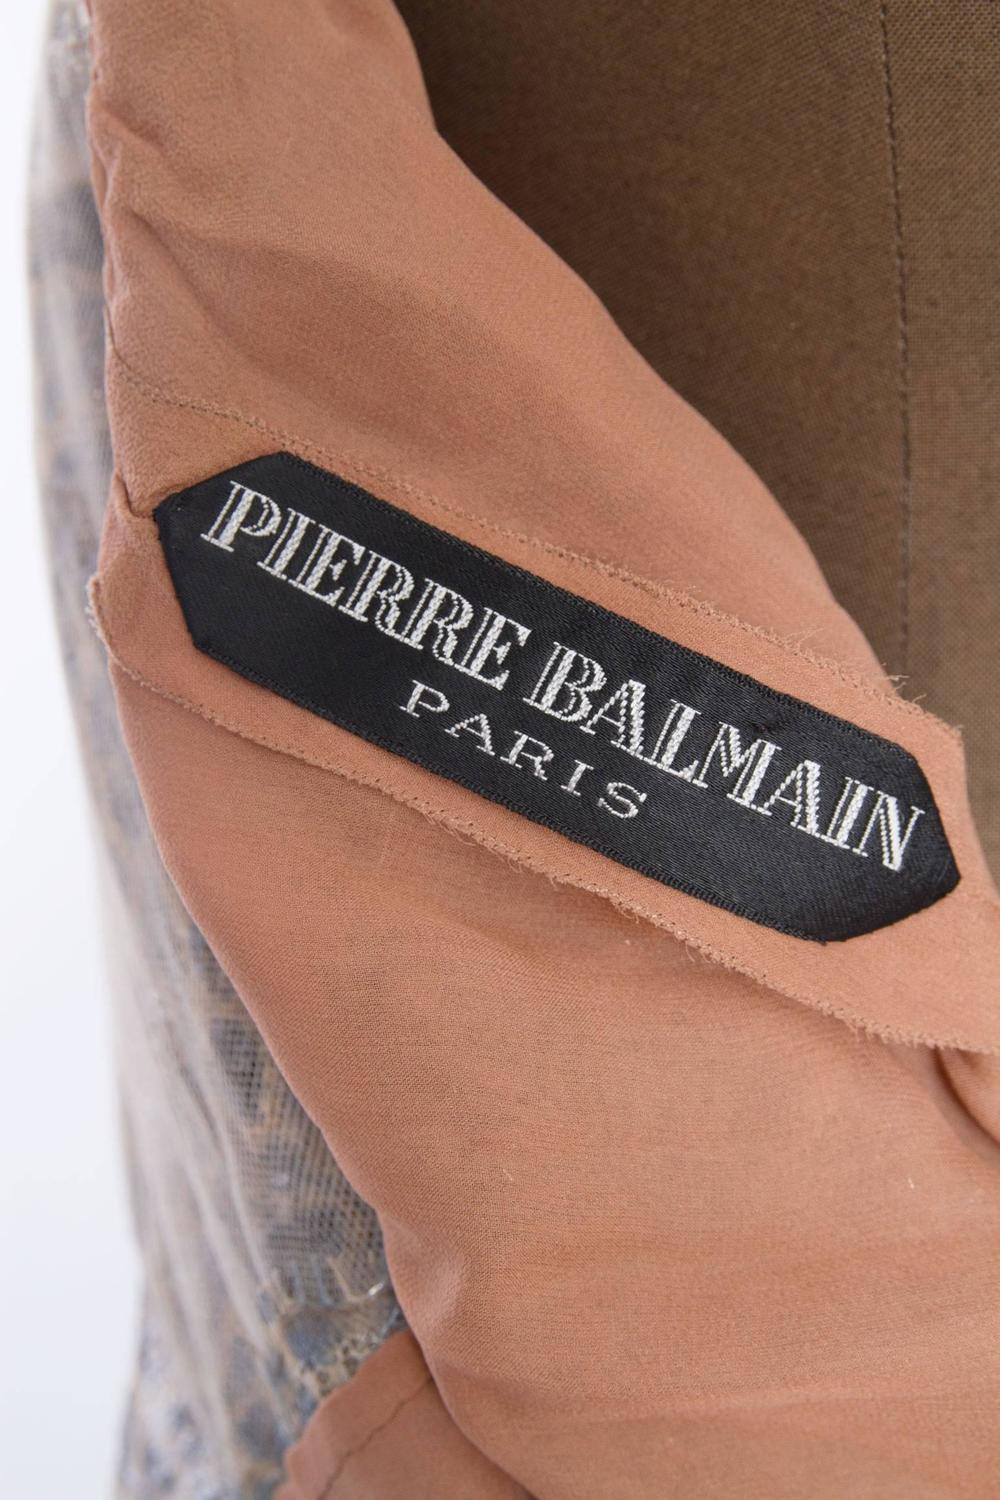 Pierre Balmain Watches Pearl